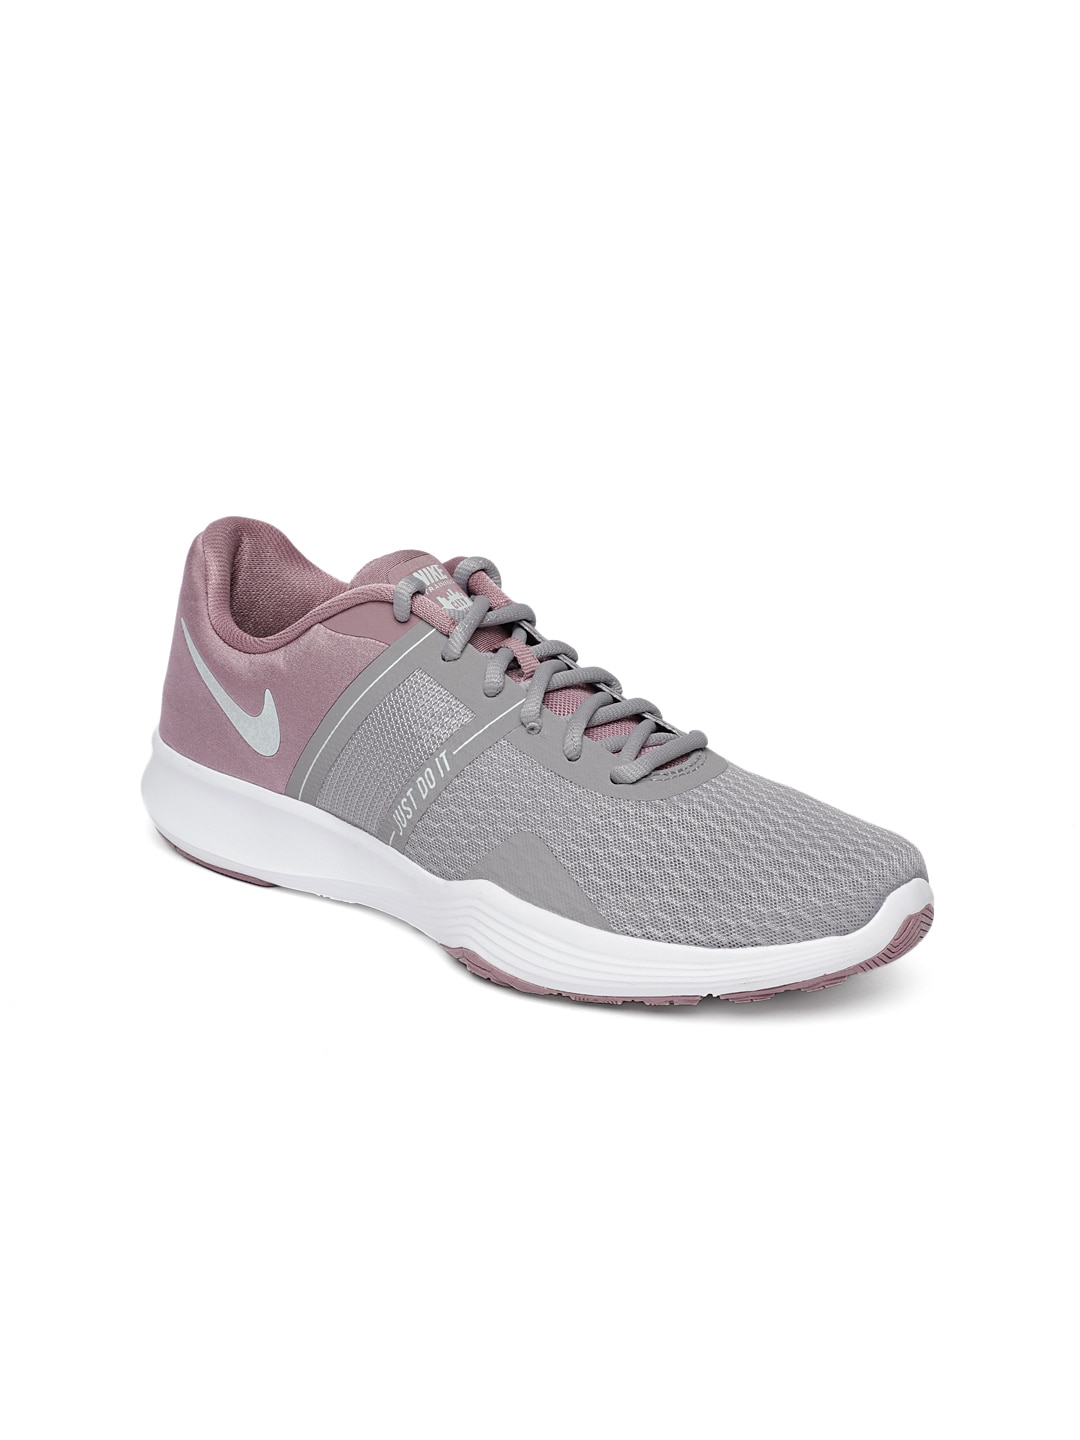 timeless design dbf44 a72b8 Nike Shoes - Buy Nike Shoes for Men, Women   Kids Online   Myntra